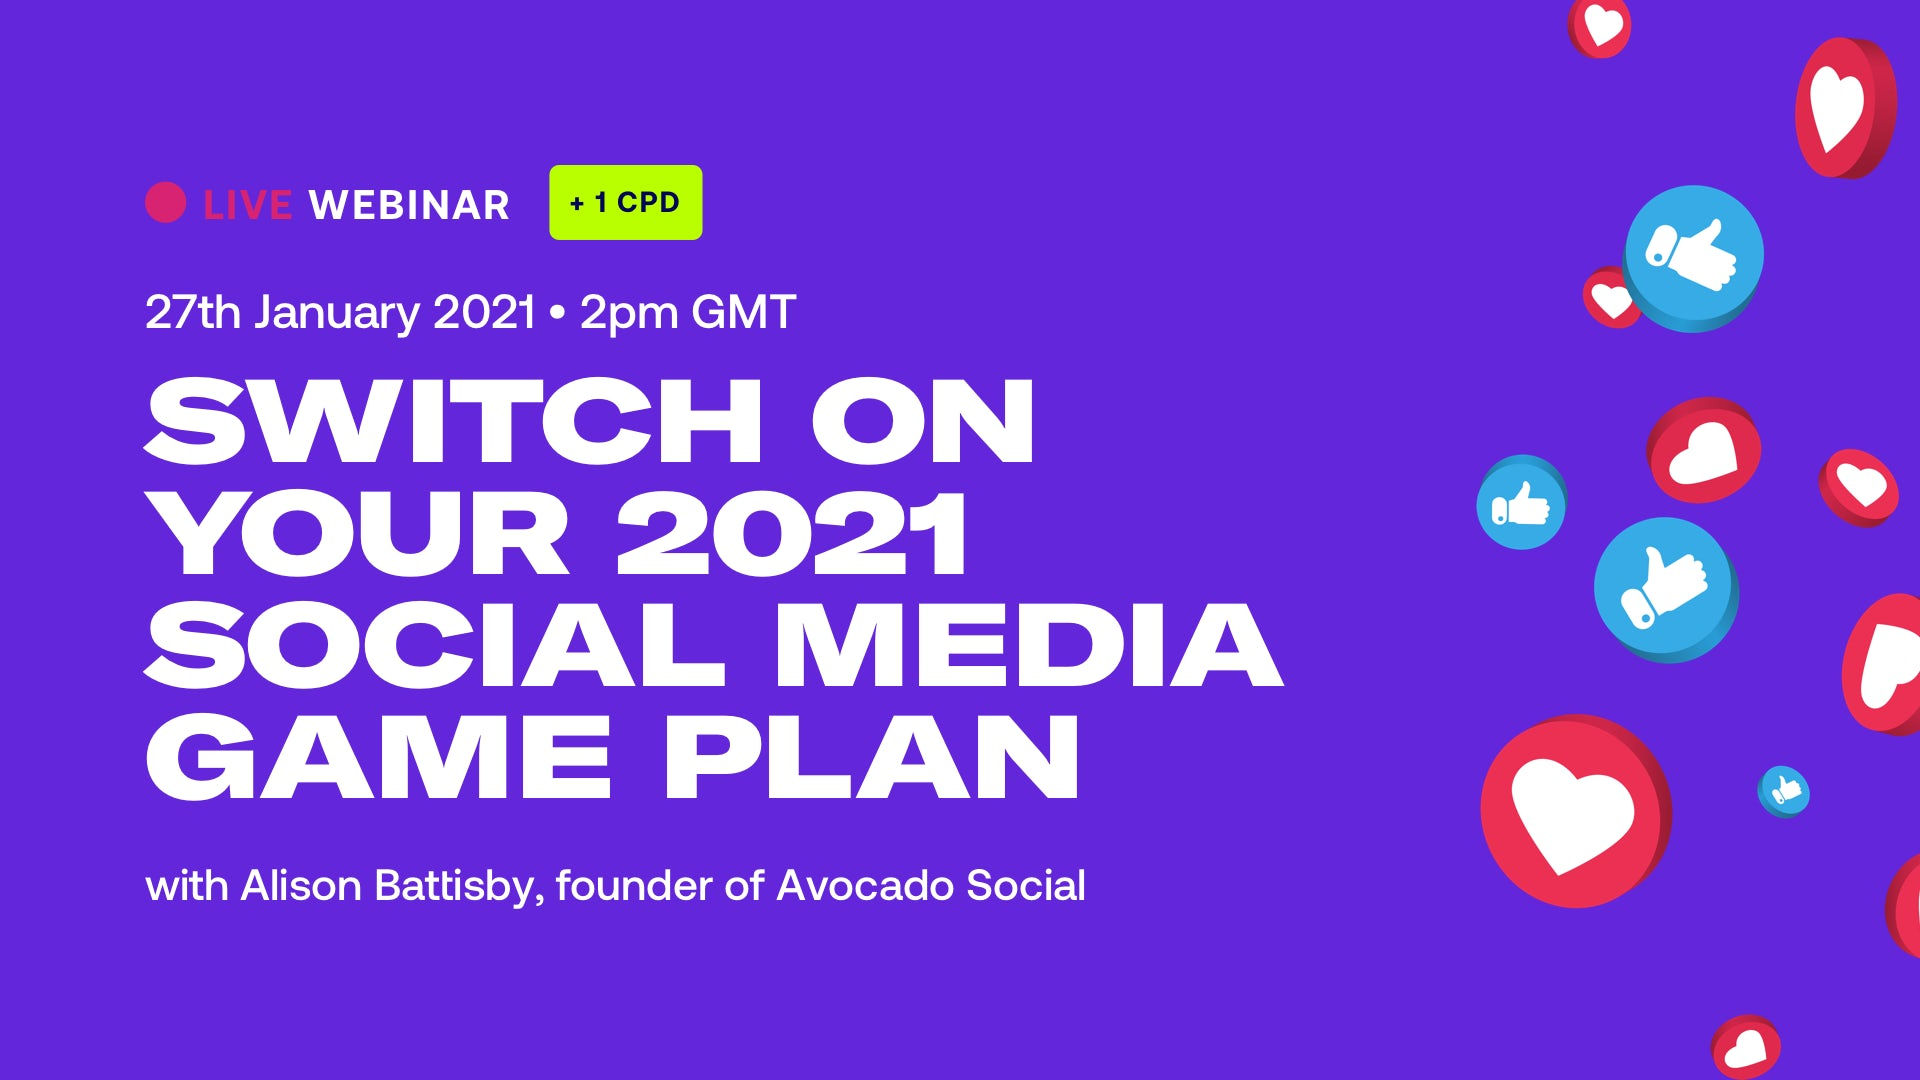 Switch On Your 2021 Social Media Game Plan